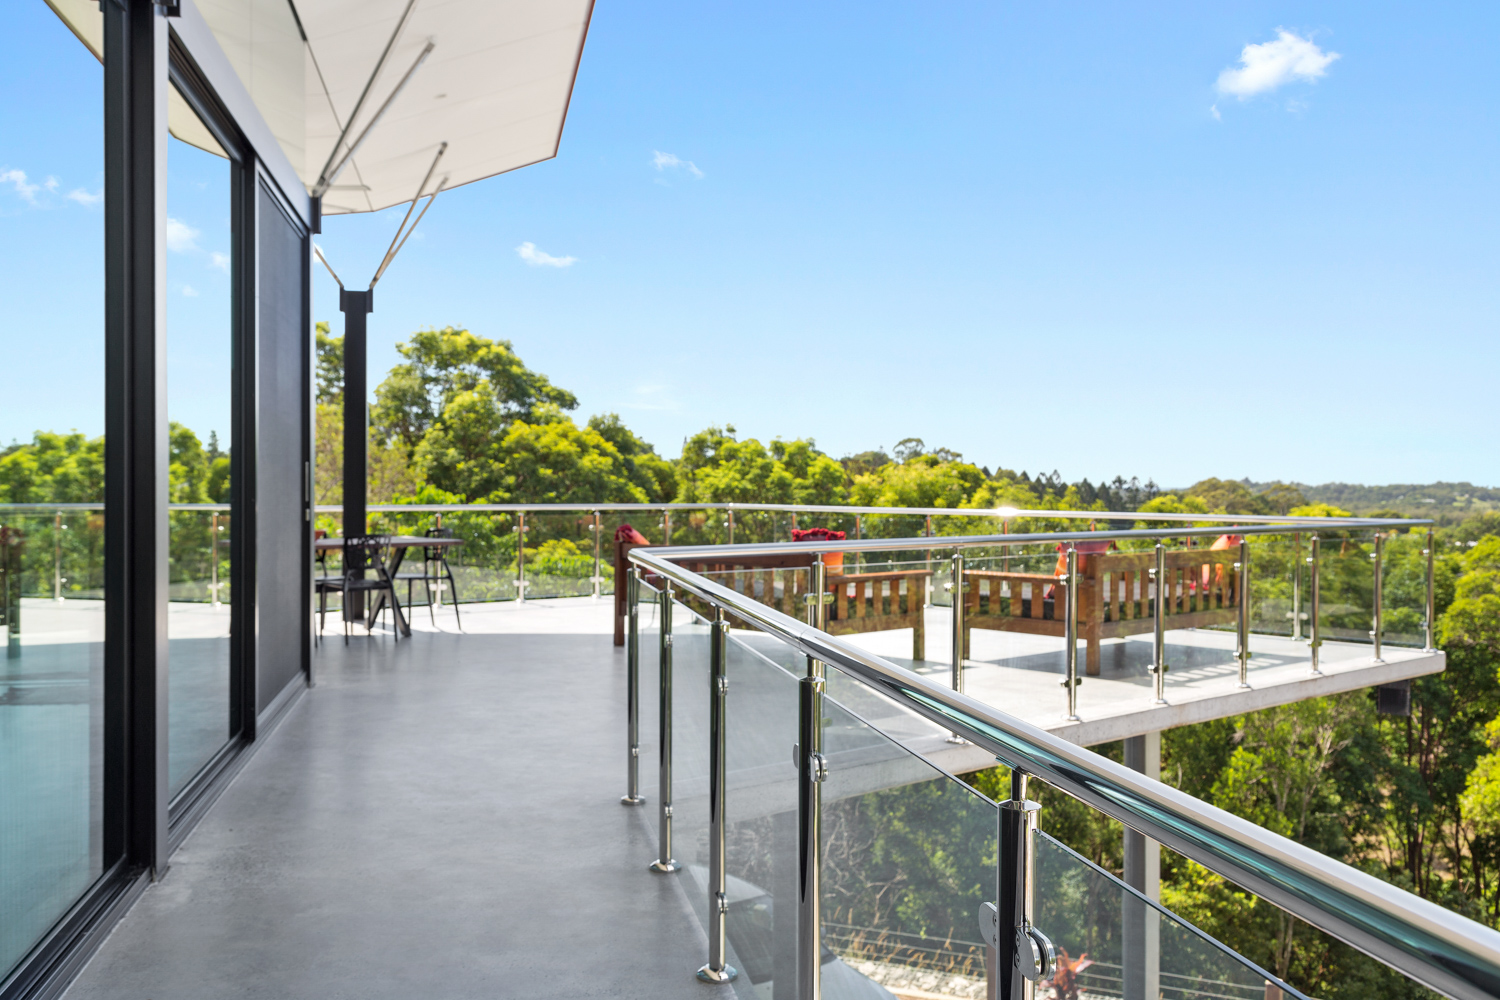 Stainless steel handrail and posts286